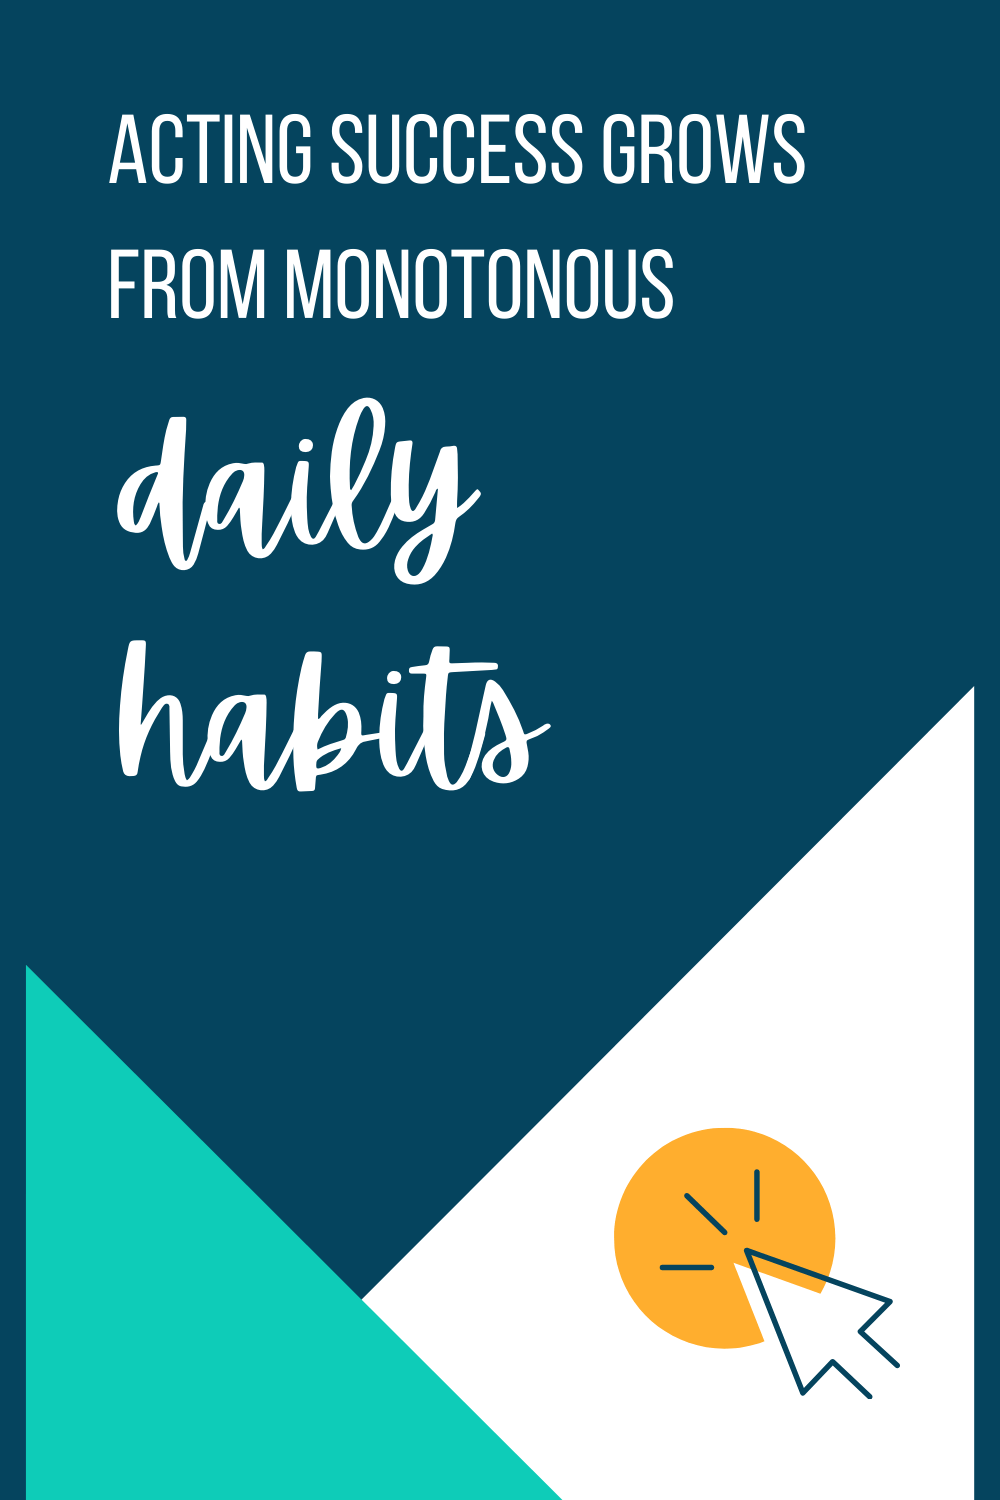 Daily habits for actors